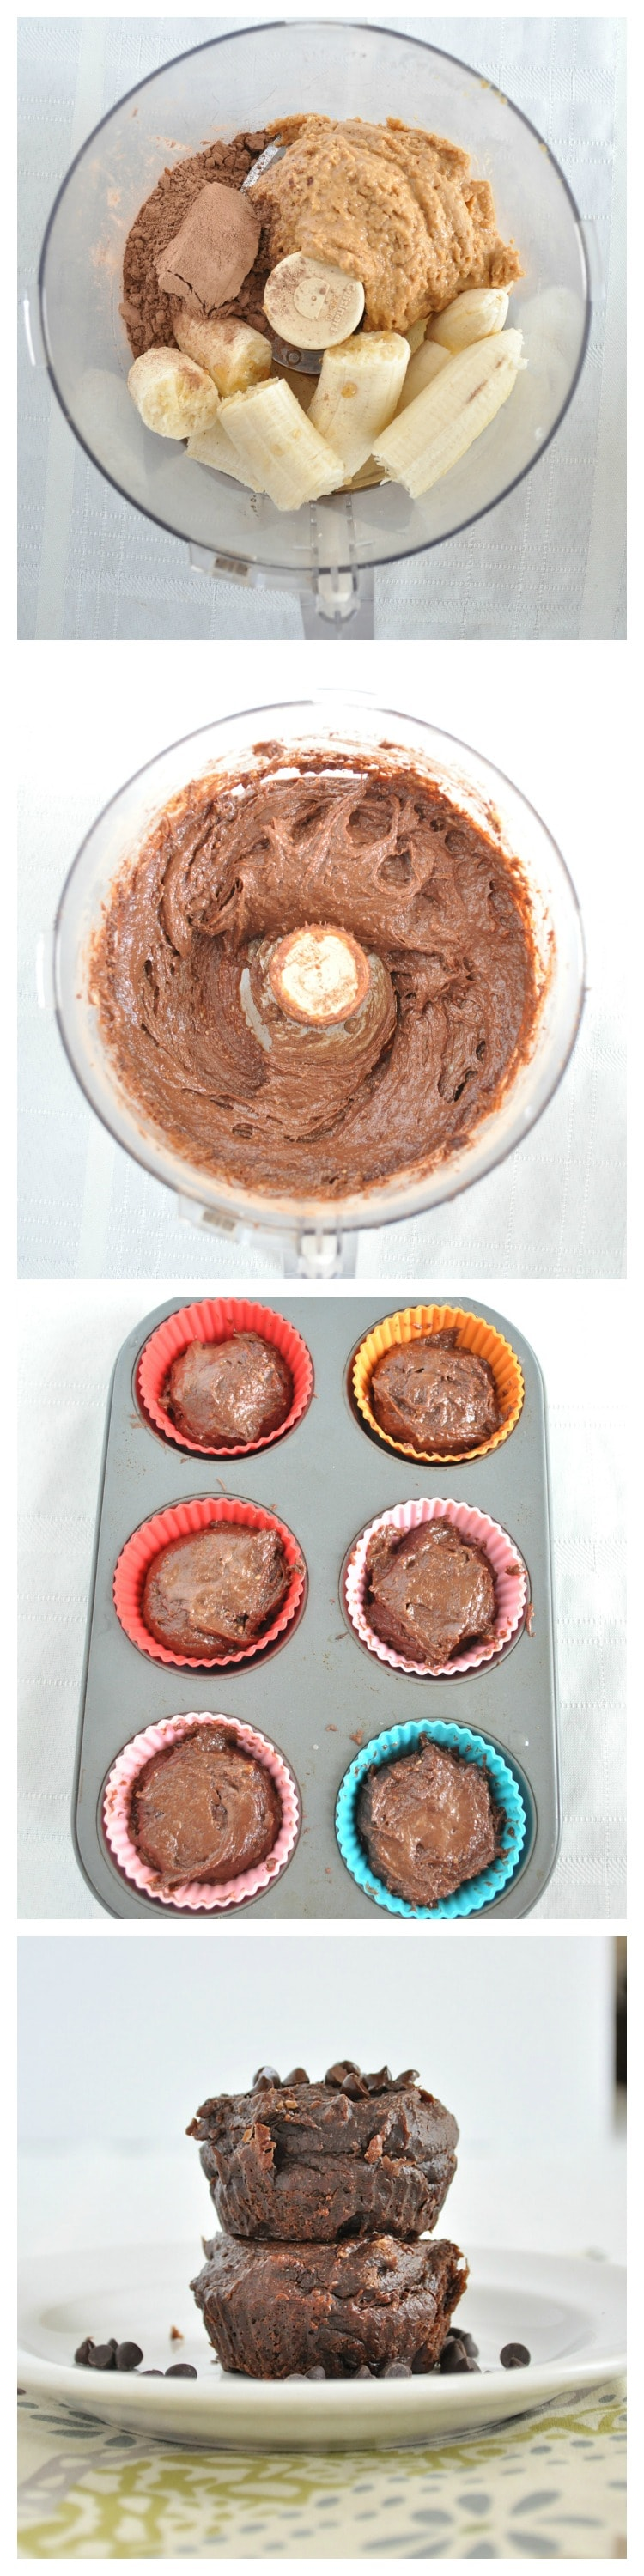 Flourless Chocolate Muffin Steps